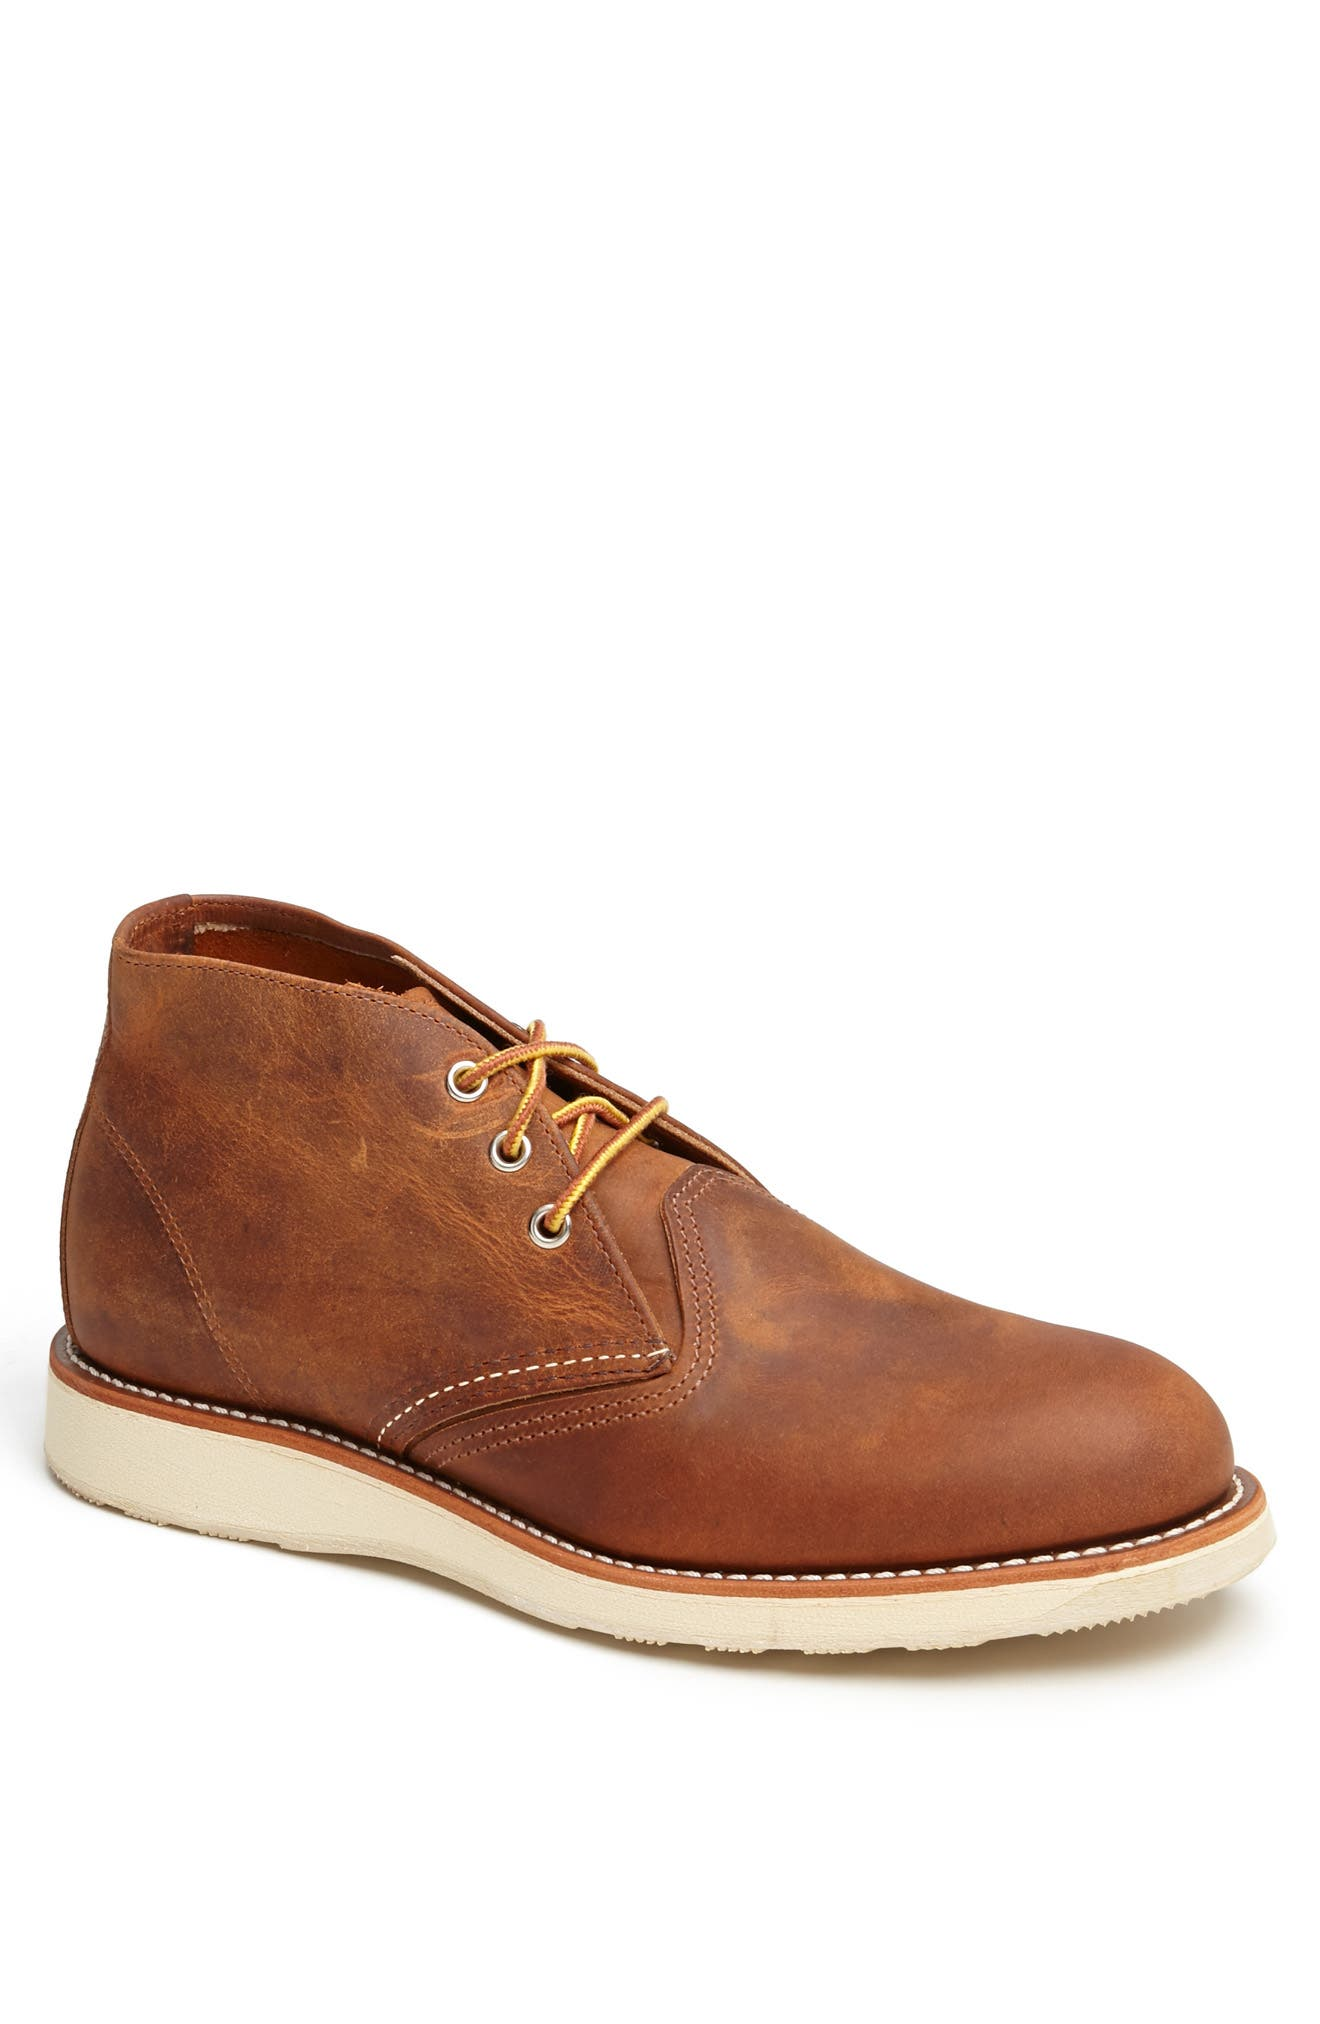 'Classic' Chukka Boot,                             Main thumbnail 1, color,                             Copper